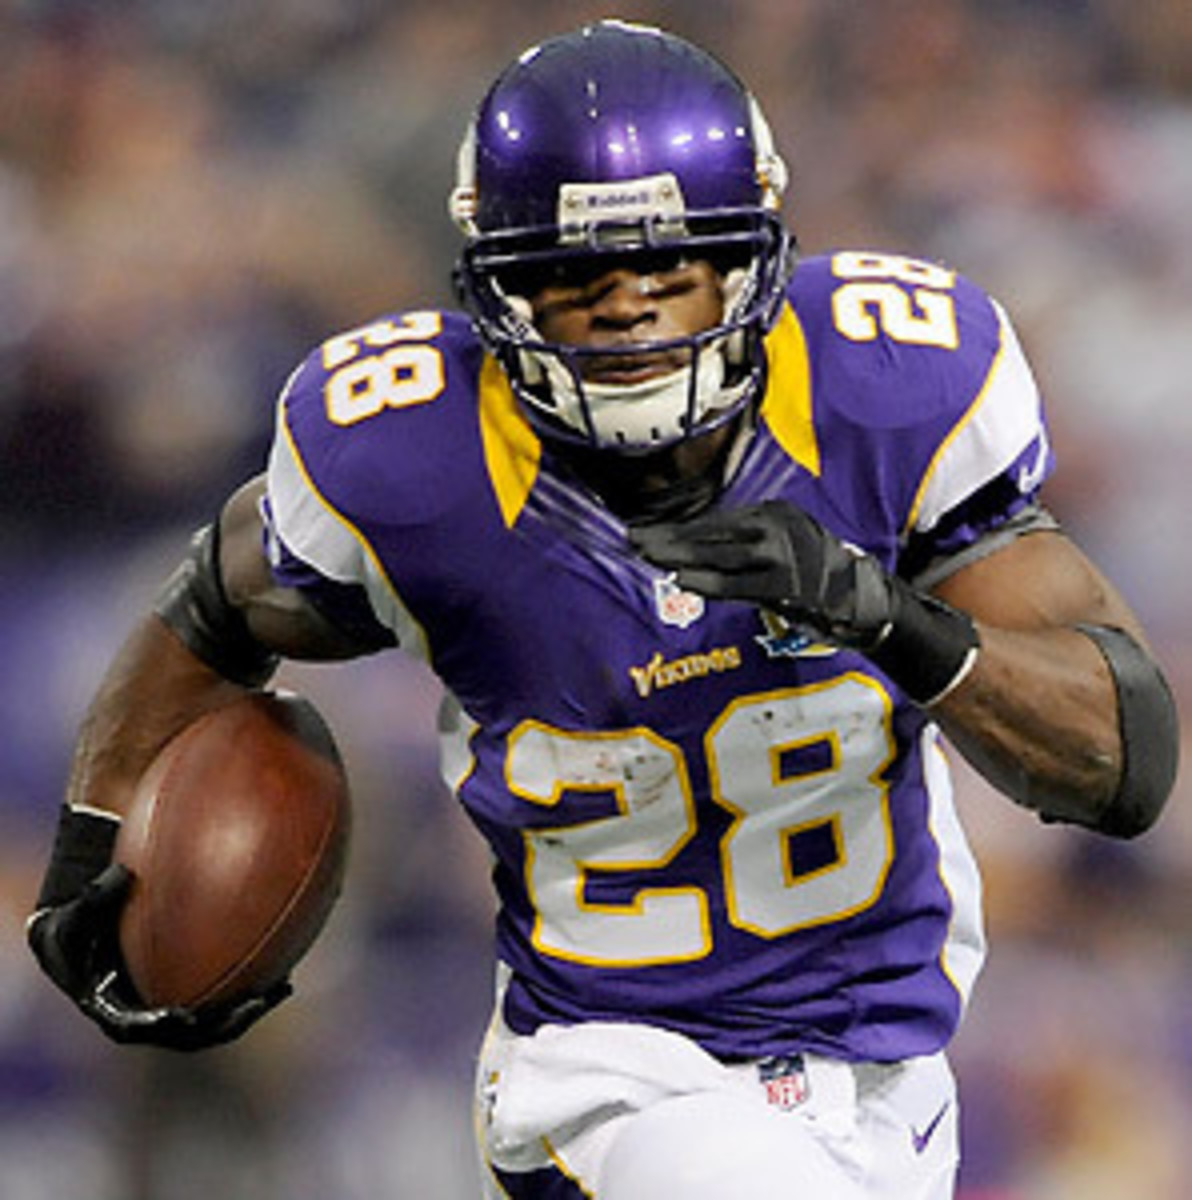 Does AP deserve to be the #1 overall pick in fantasy drafts this season?